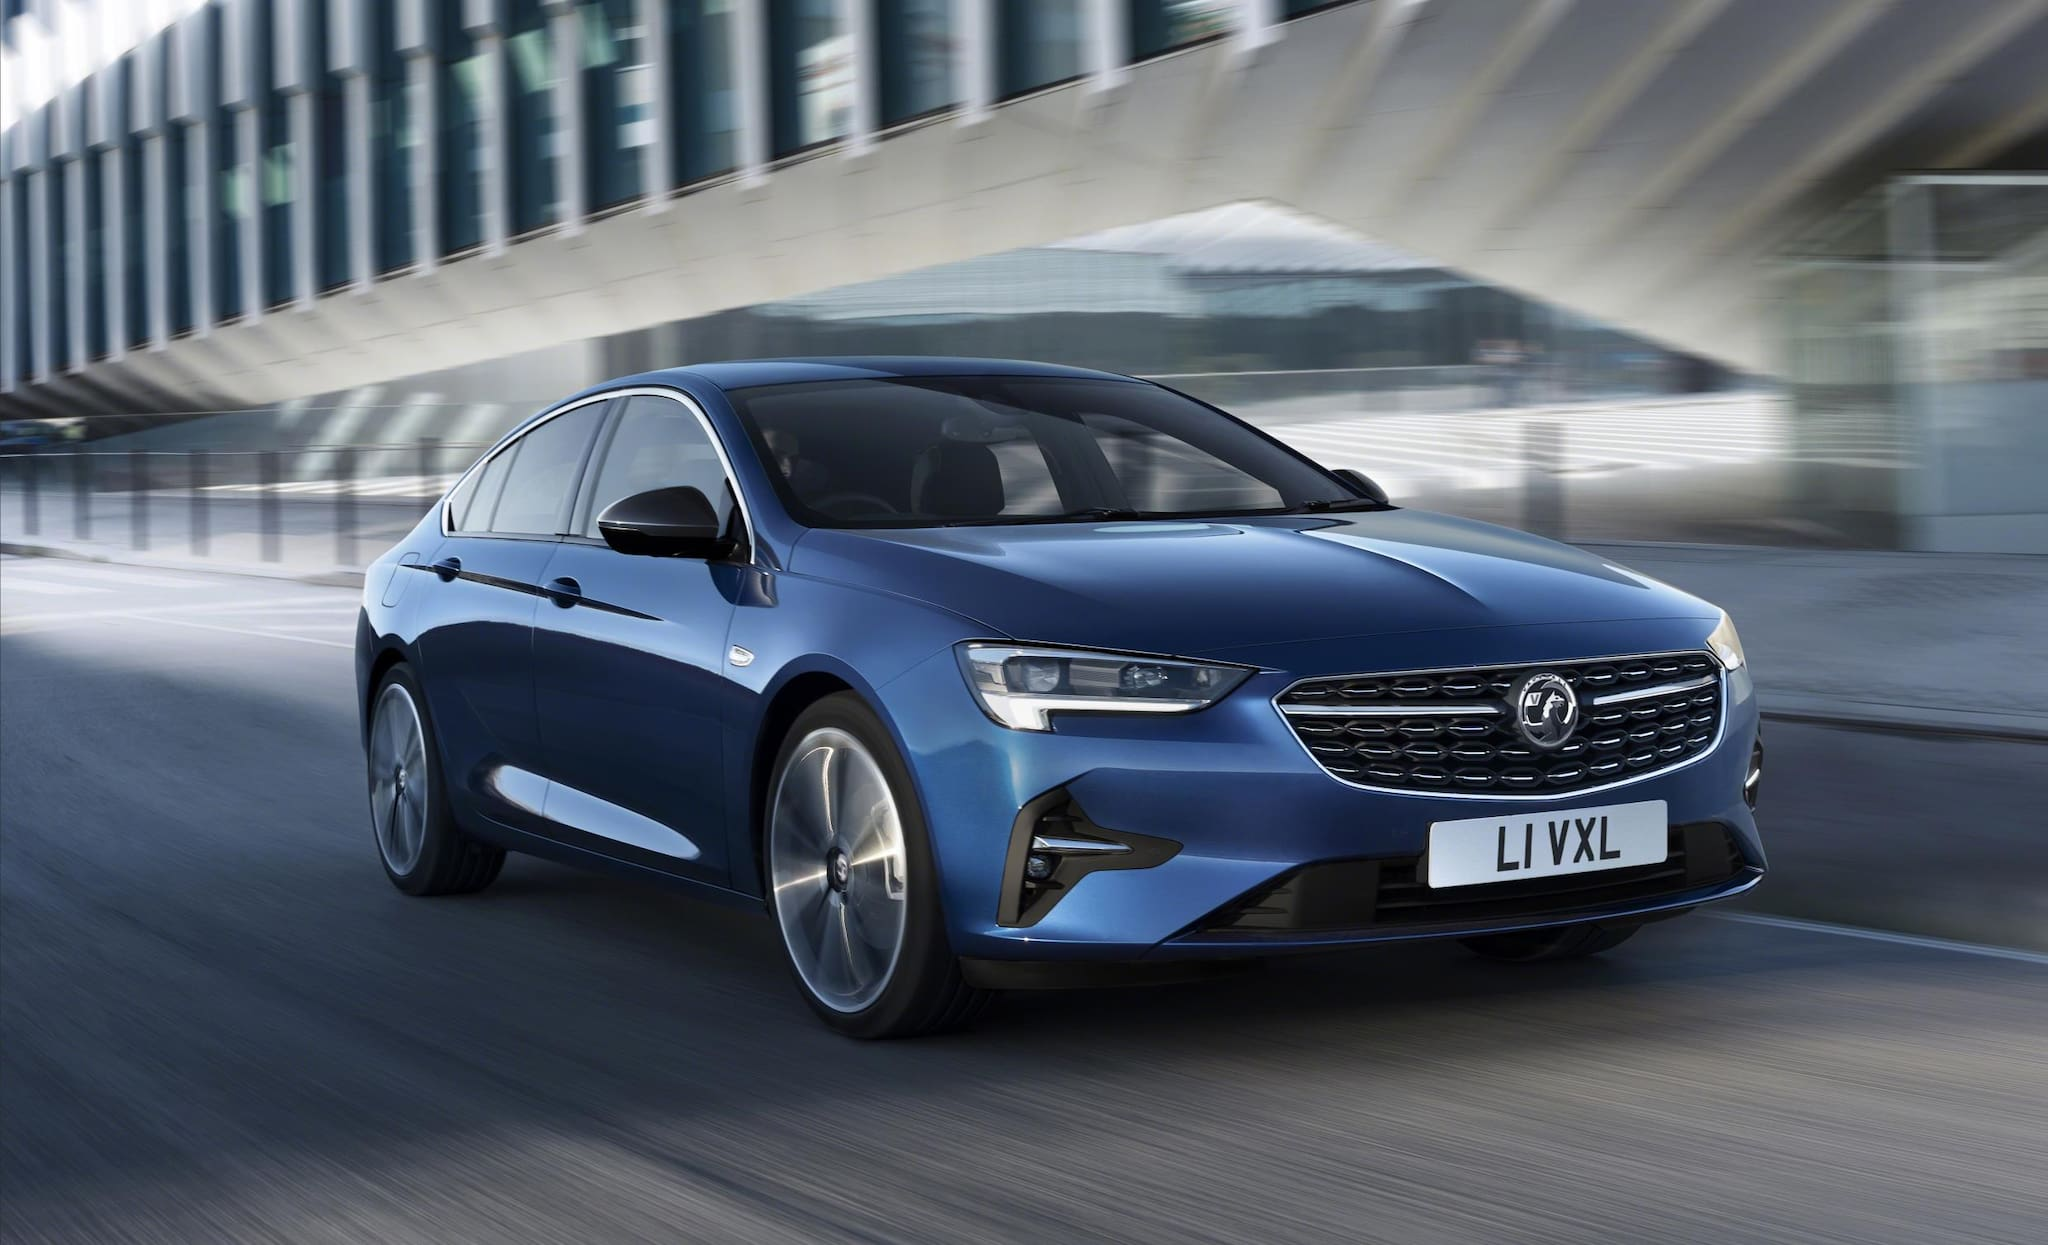 Vauxhall reveals new Insignia